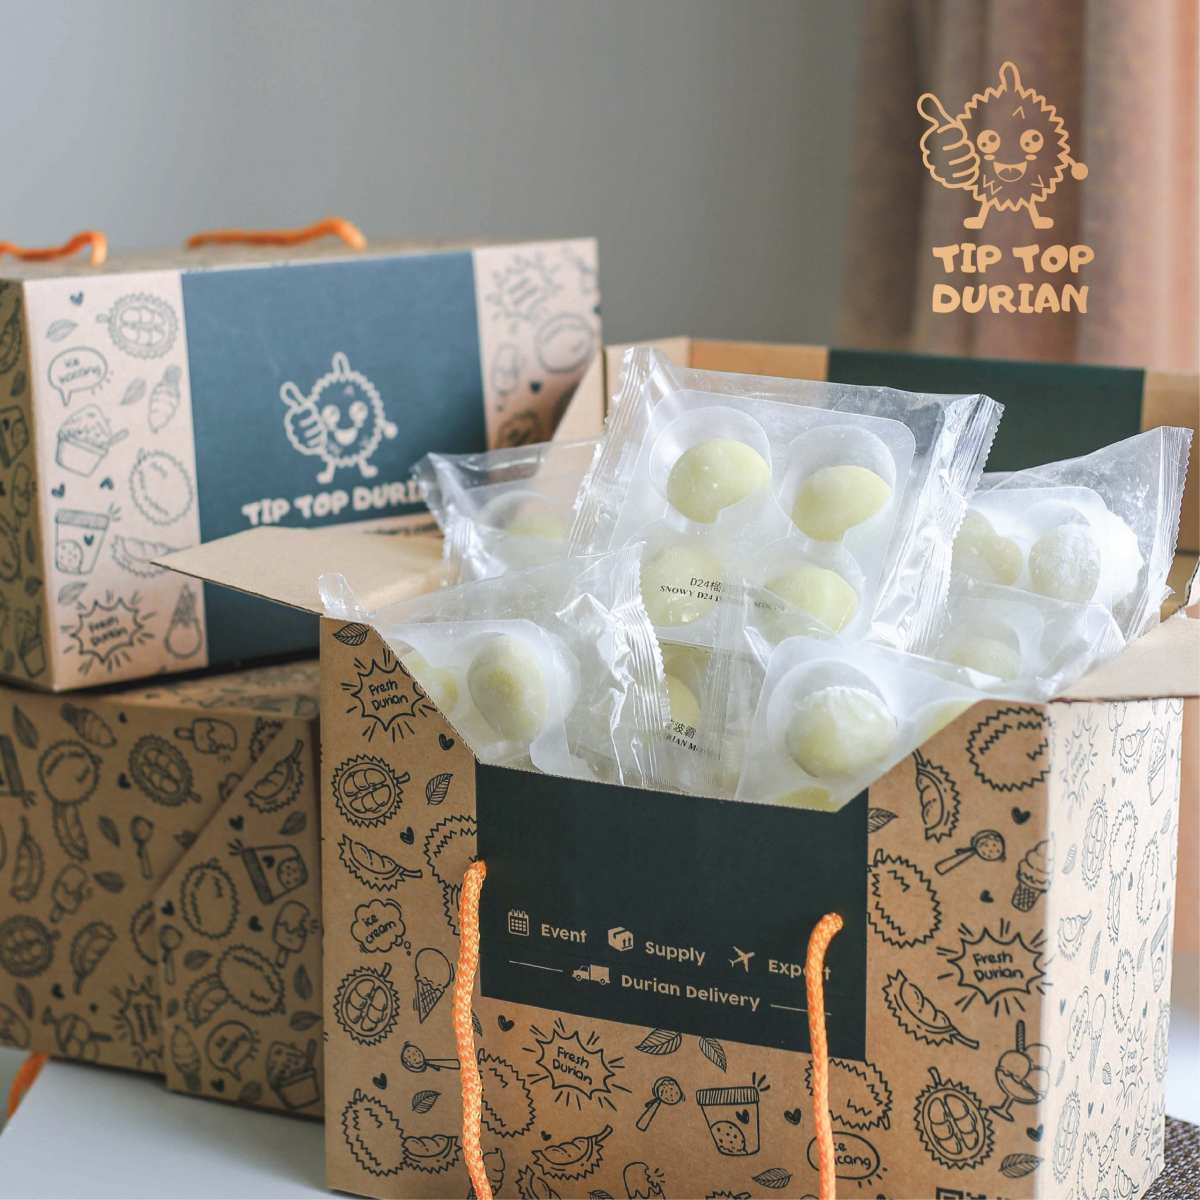 D24 Mochi 10 Packs (8) | Tip Top Durian Delivery | Malaysia Top Fresh Durian Online Delivery